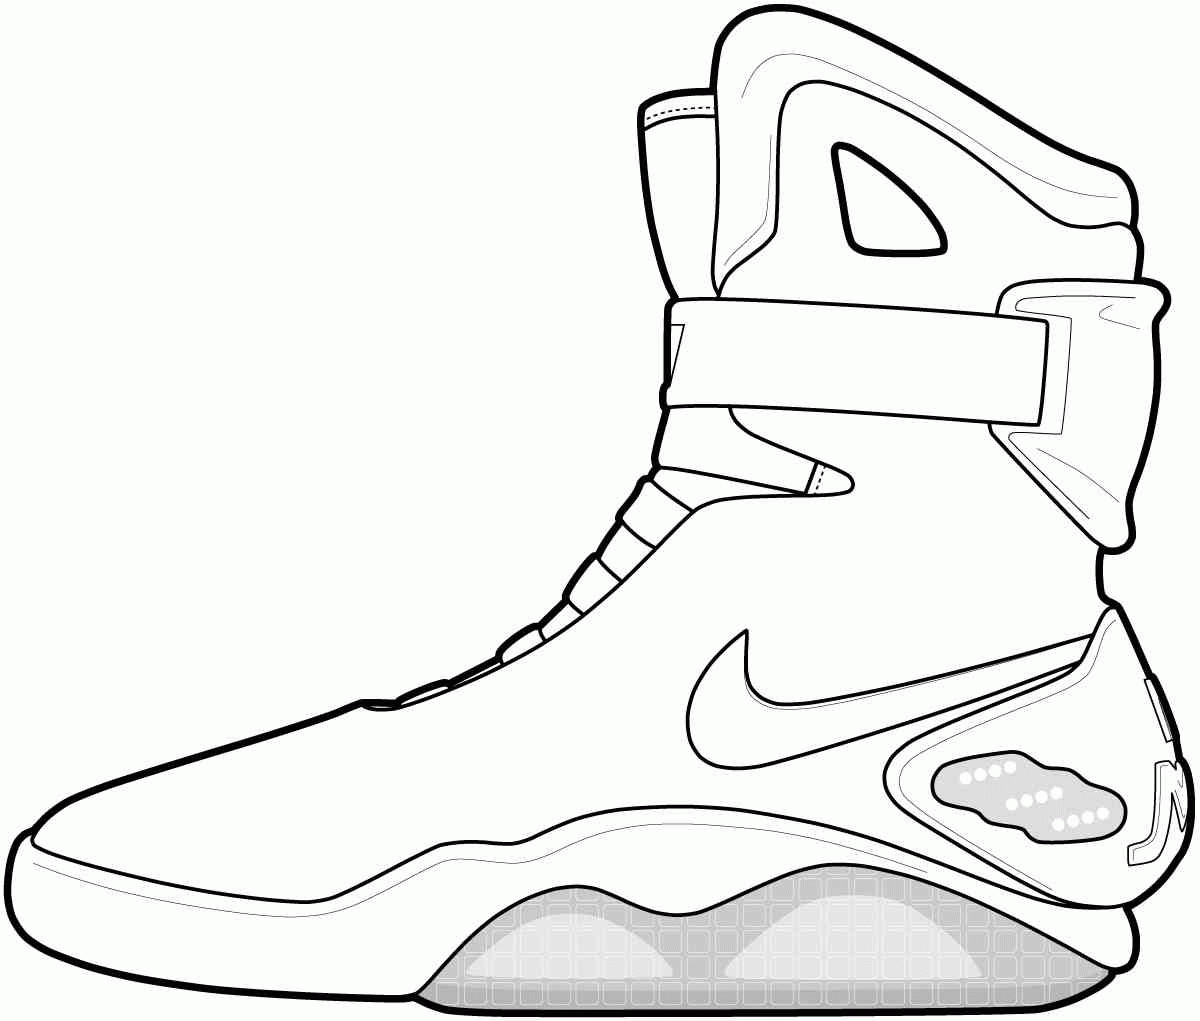 1200x1021 Basketball Shoes Drawing Basketball Wallpaper Michael Jordan Shoes